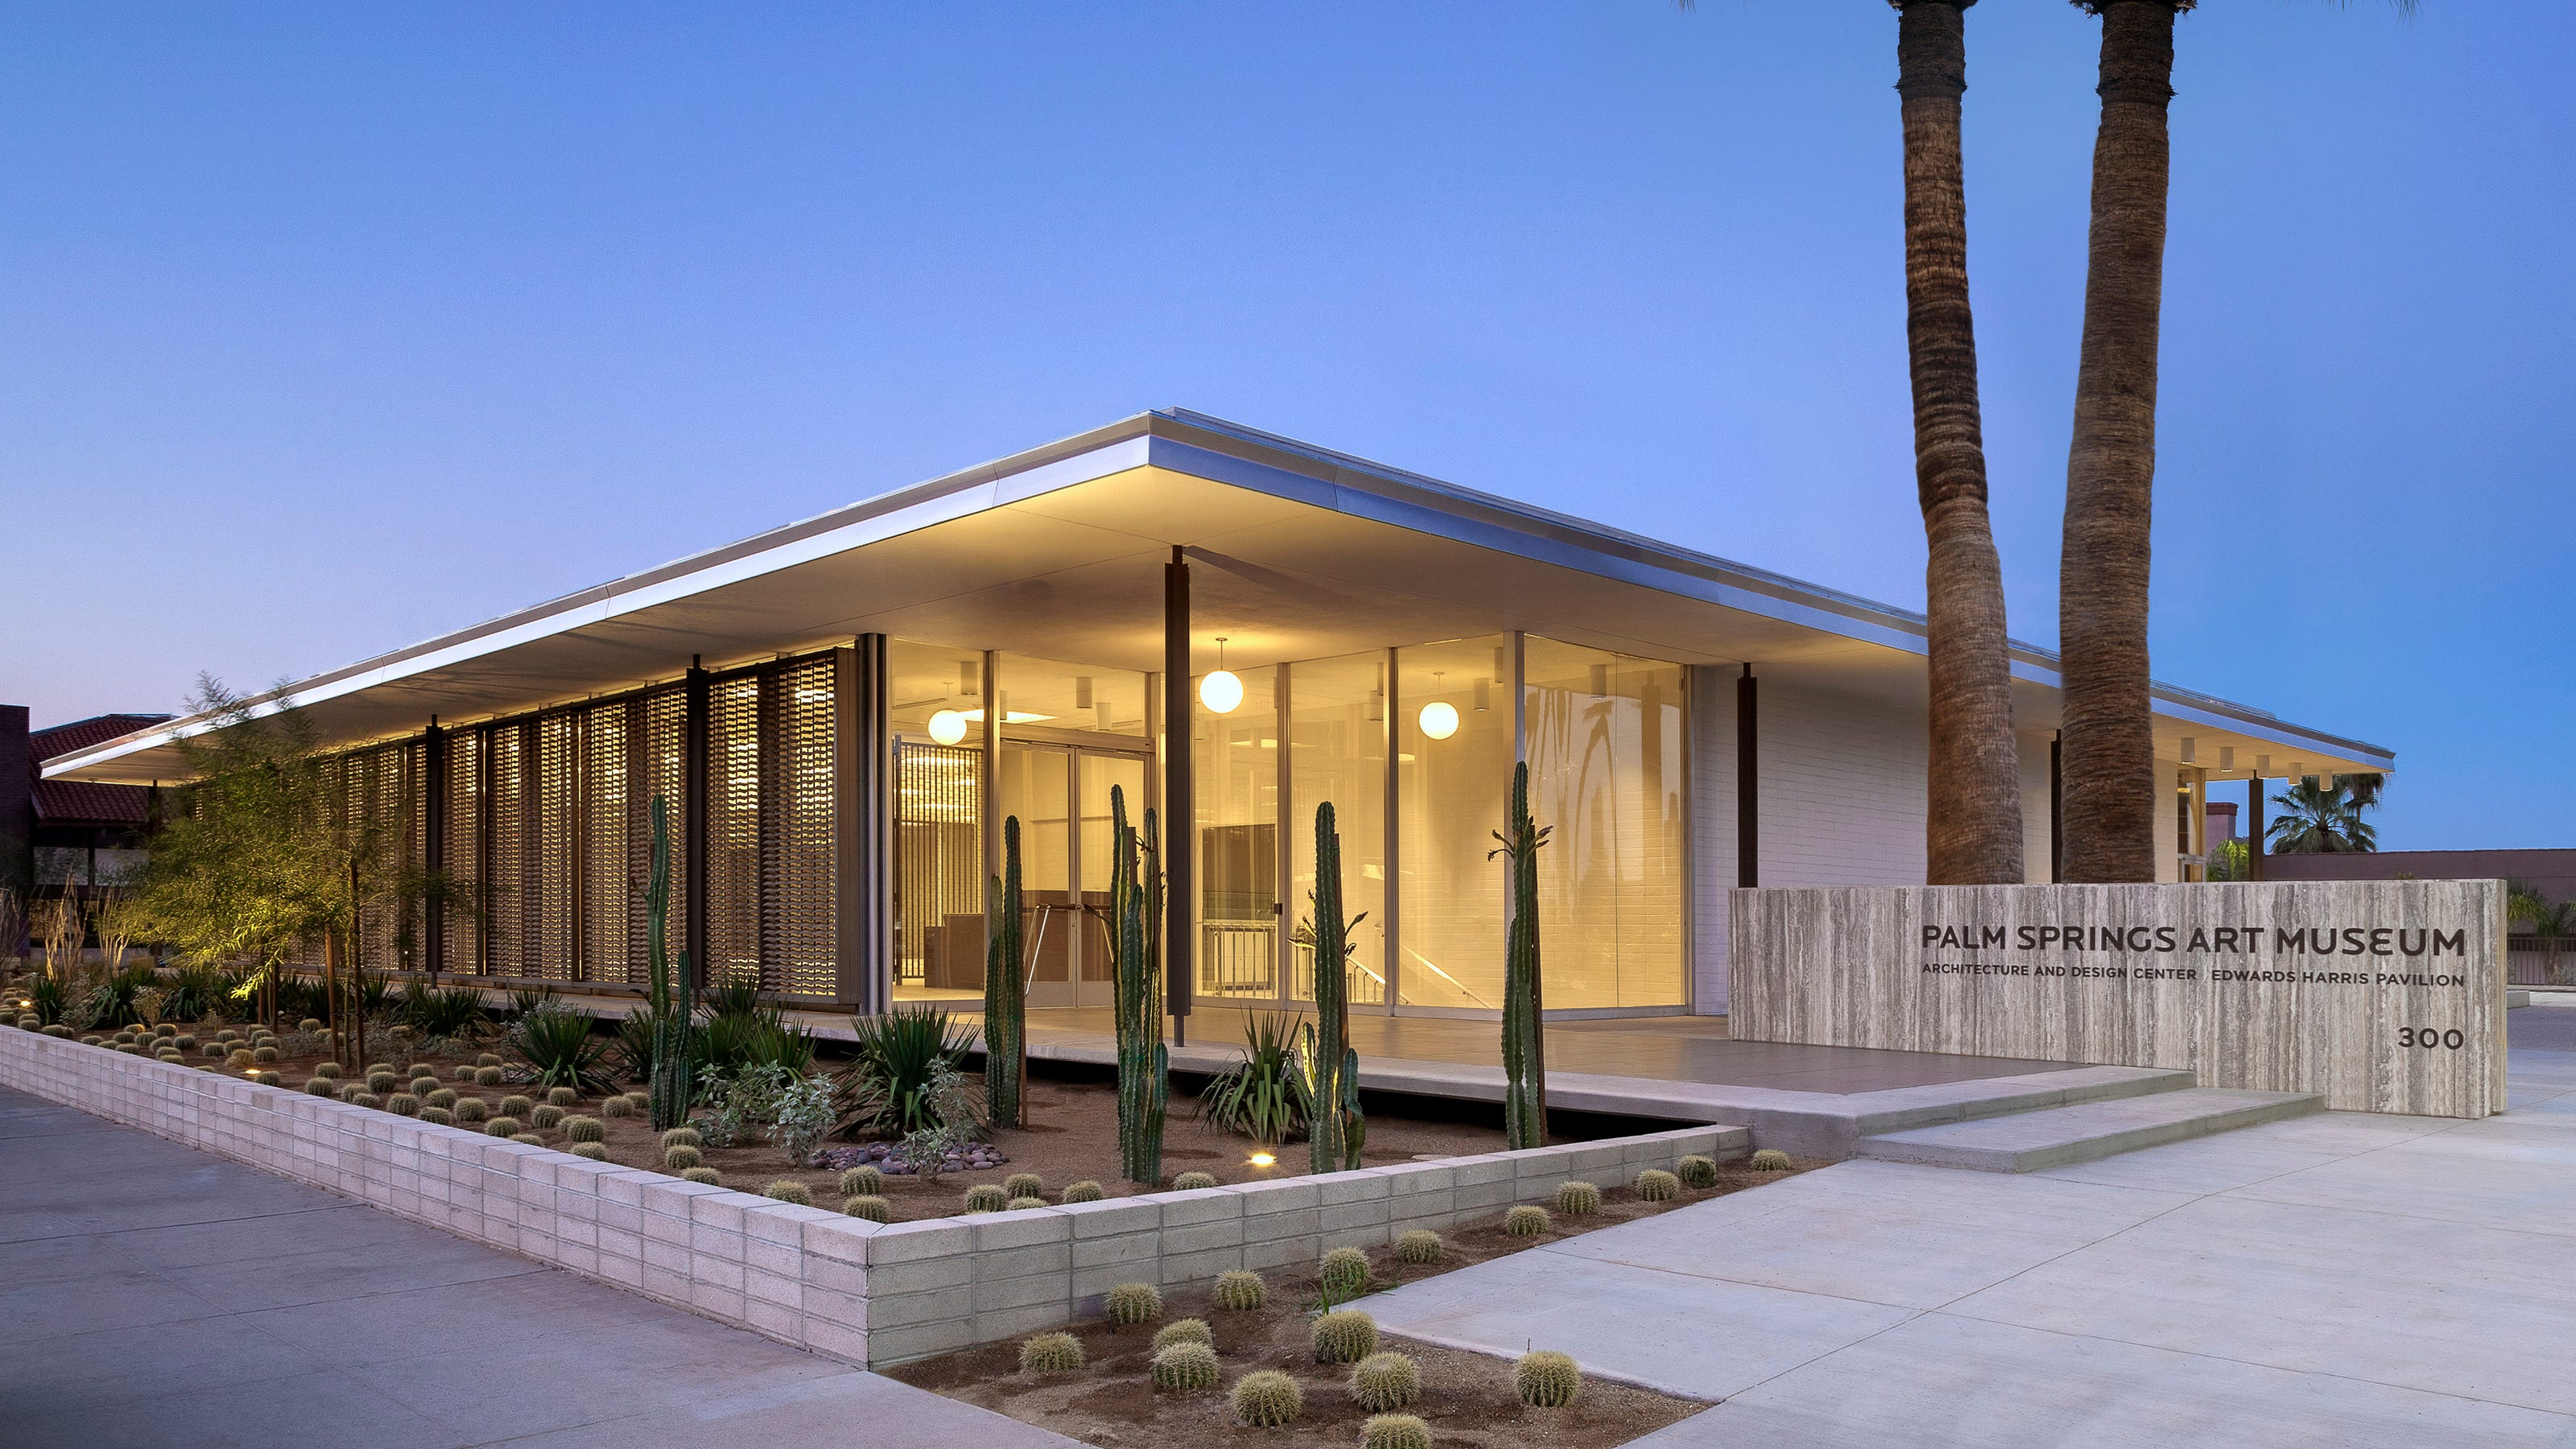 Our Voice: The new center for architecture and design